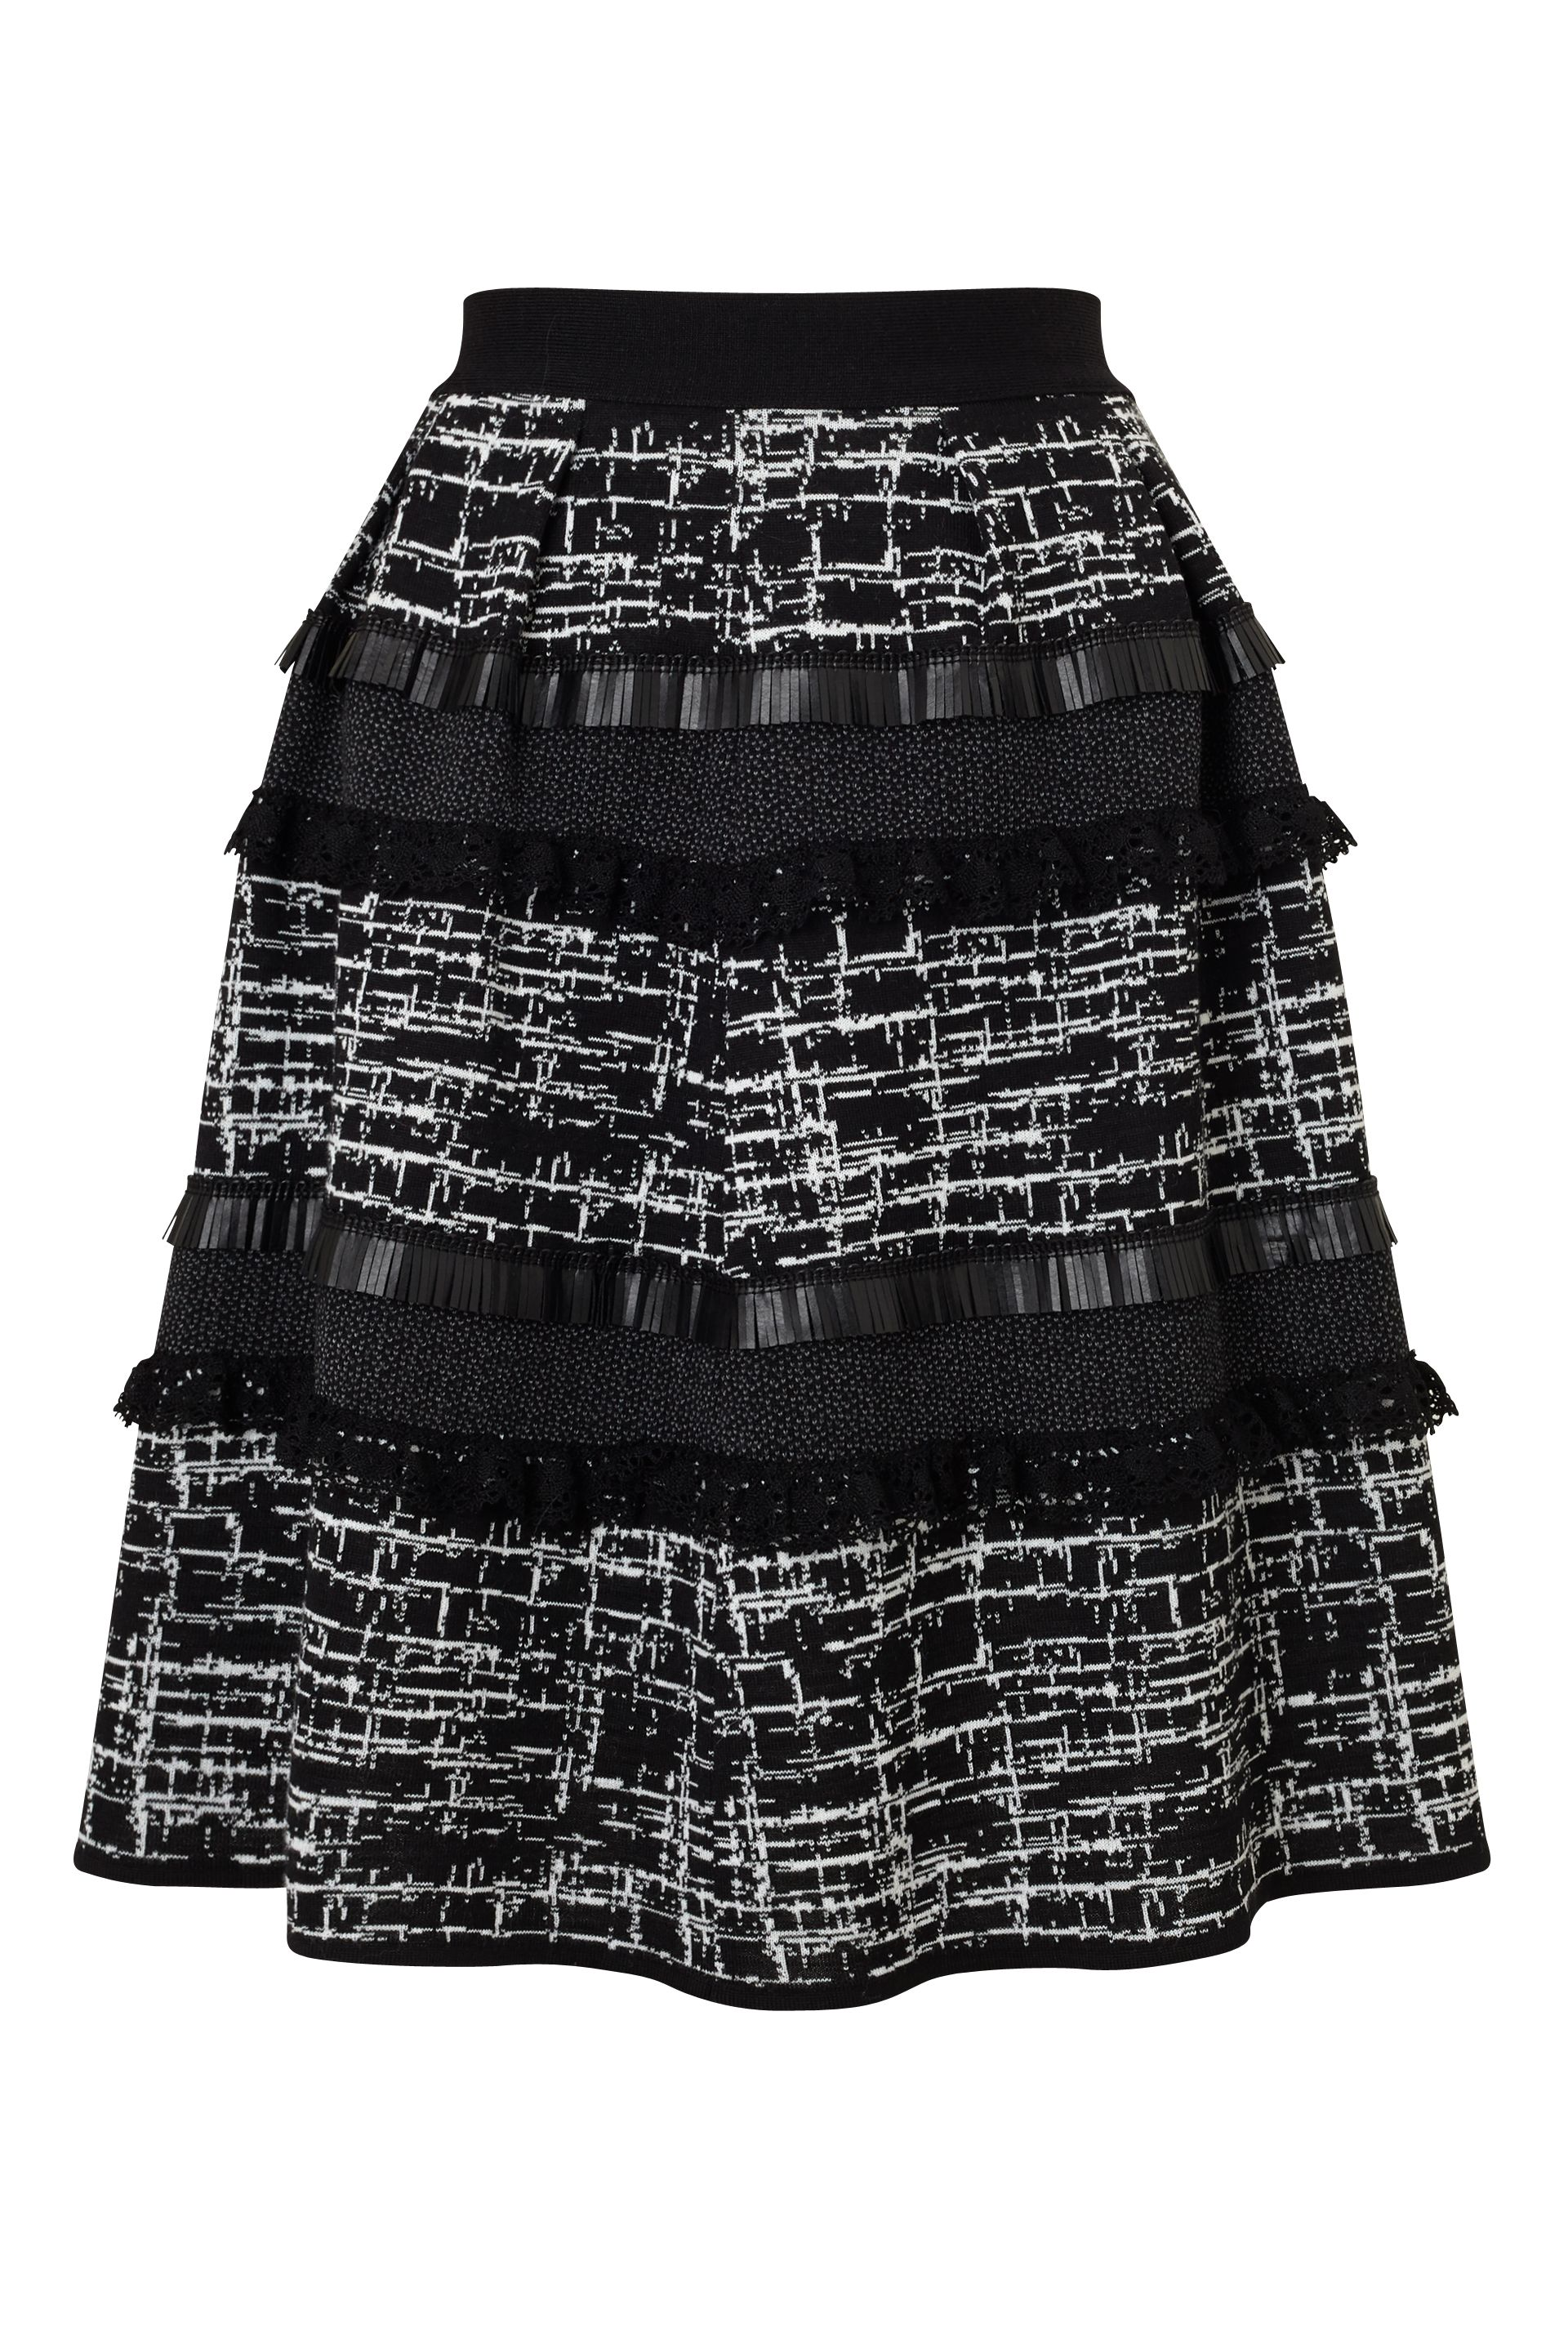 James Lakeland Jacquard Mix Fabric Skirt, Black